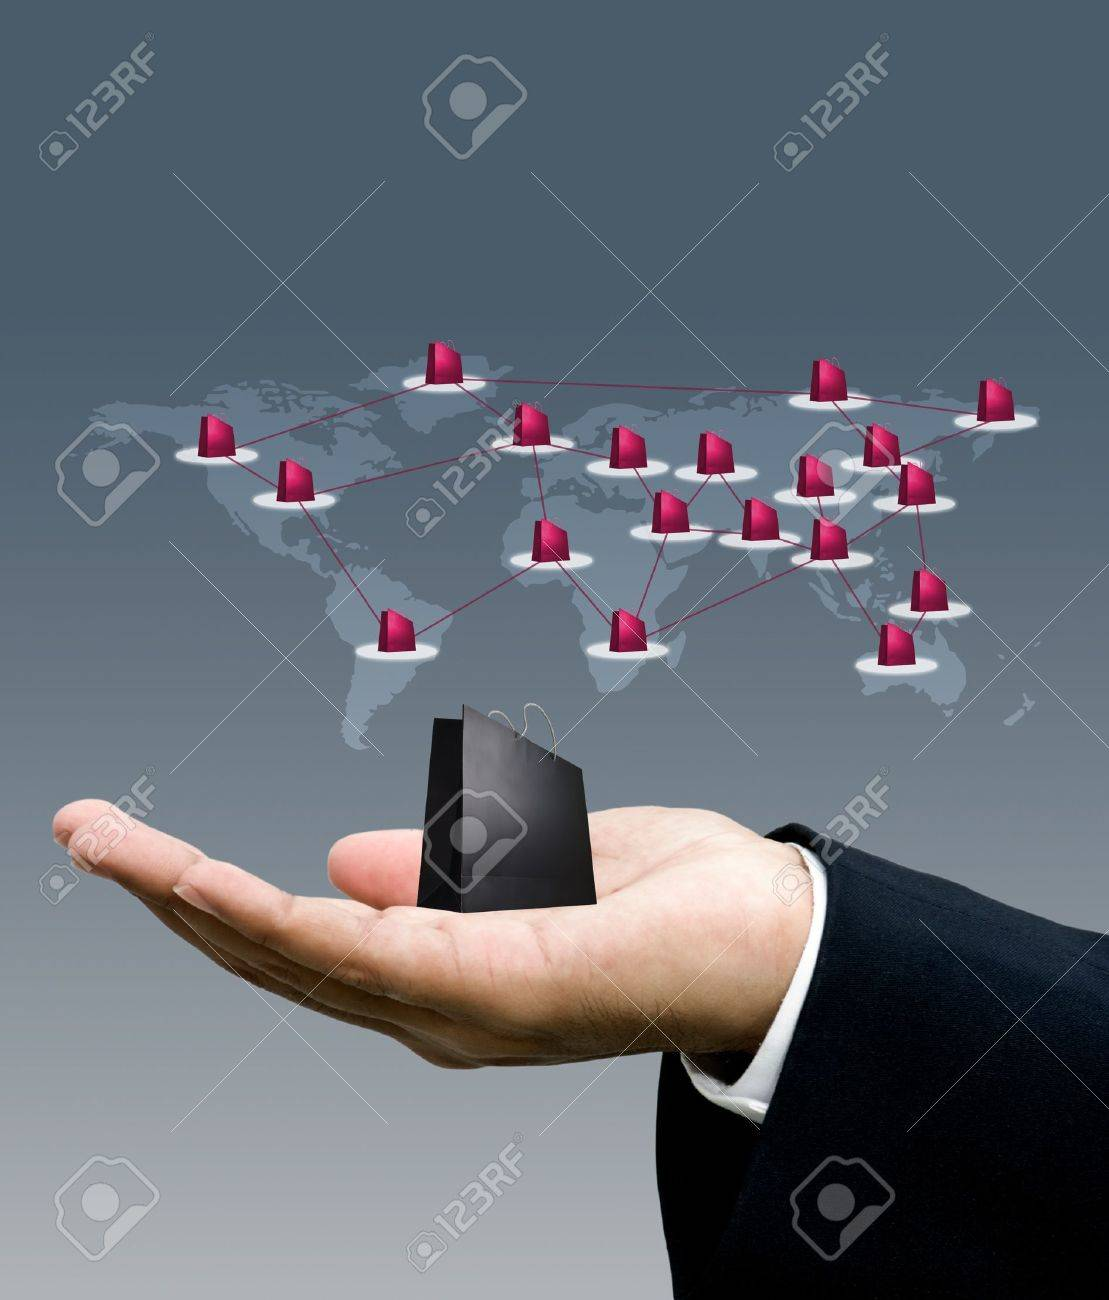 Shopping business around the world, Network marketing concept Stock Photo - 13500882